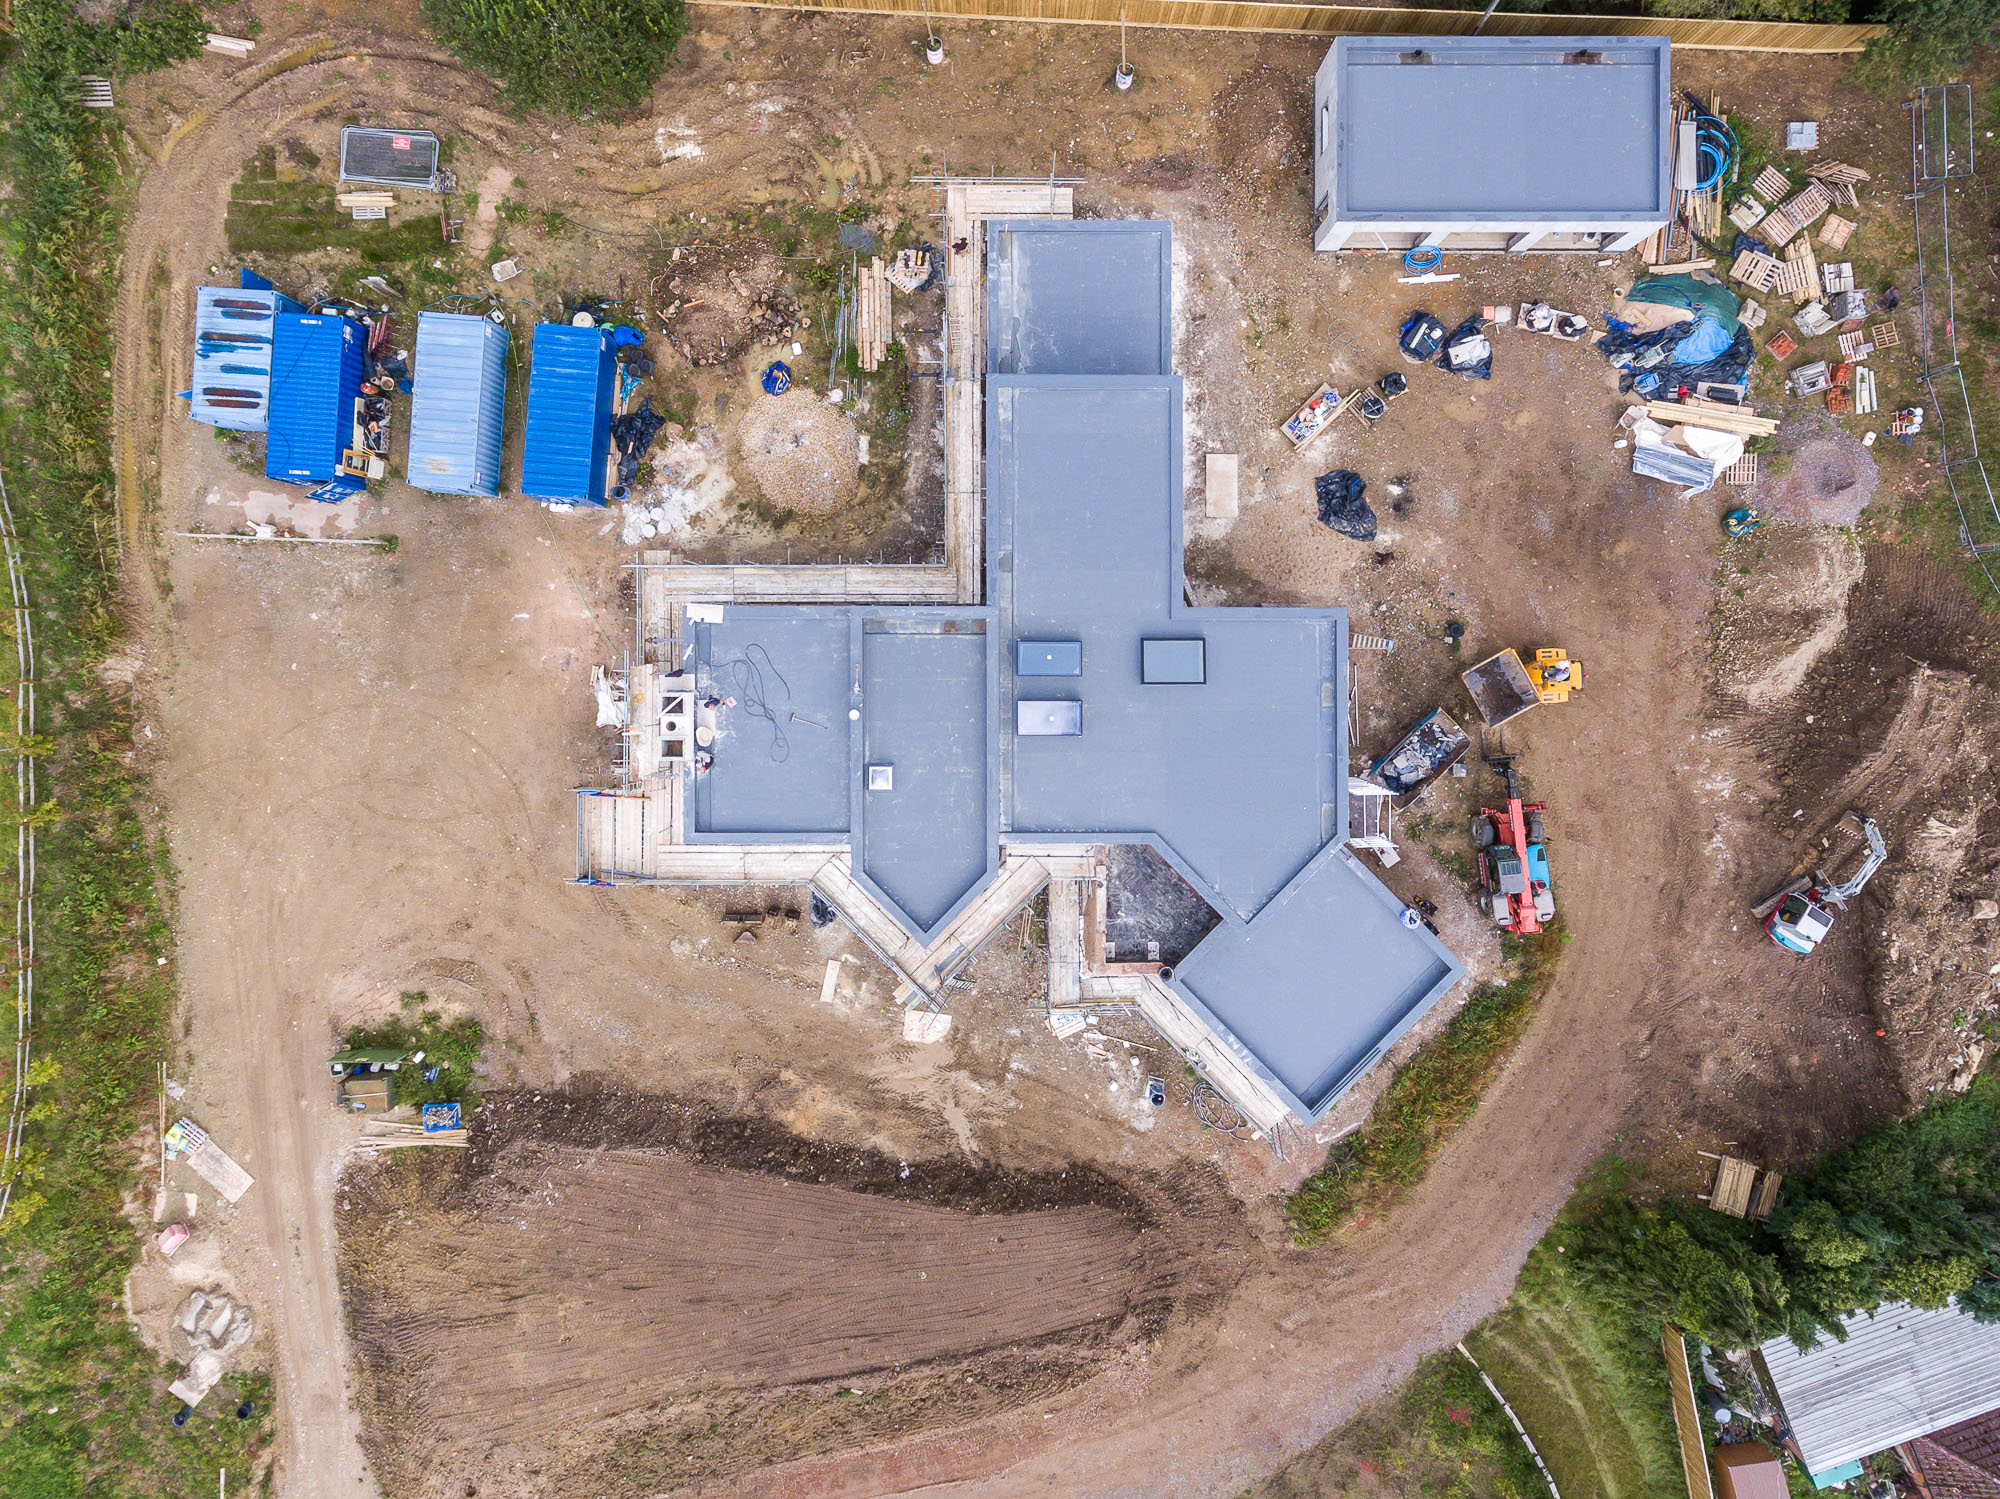 jonathan bond aerial photographer, overhead view of building site using drone